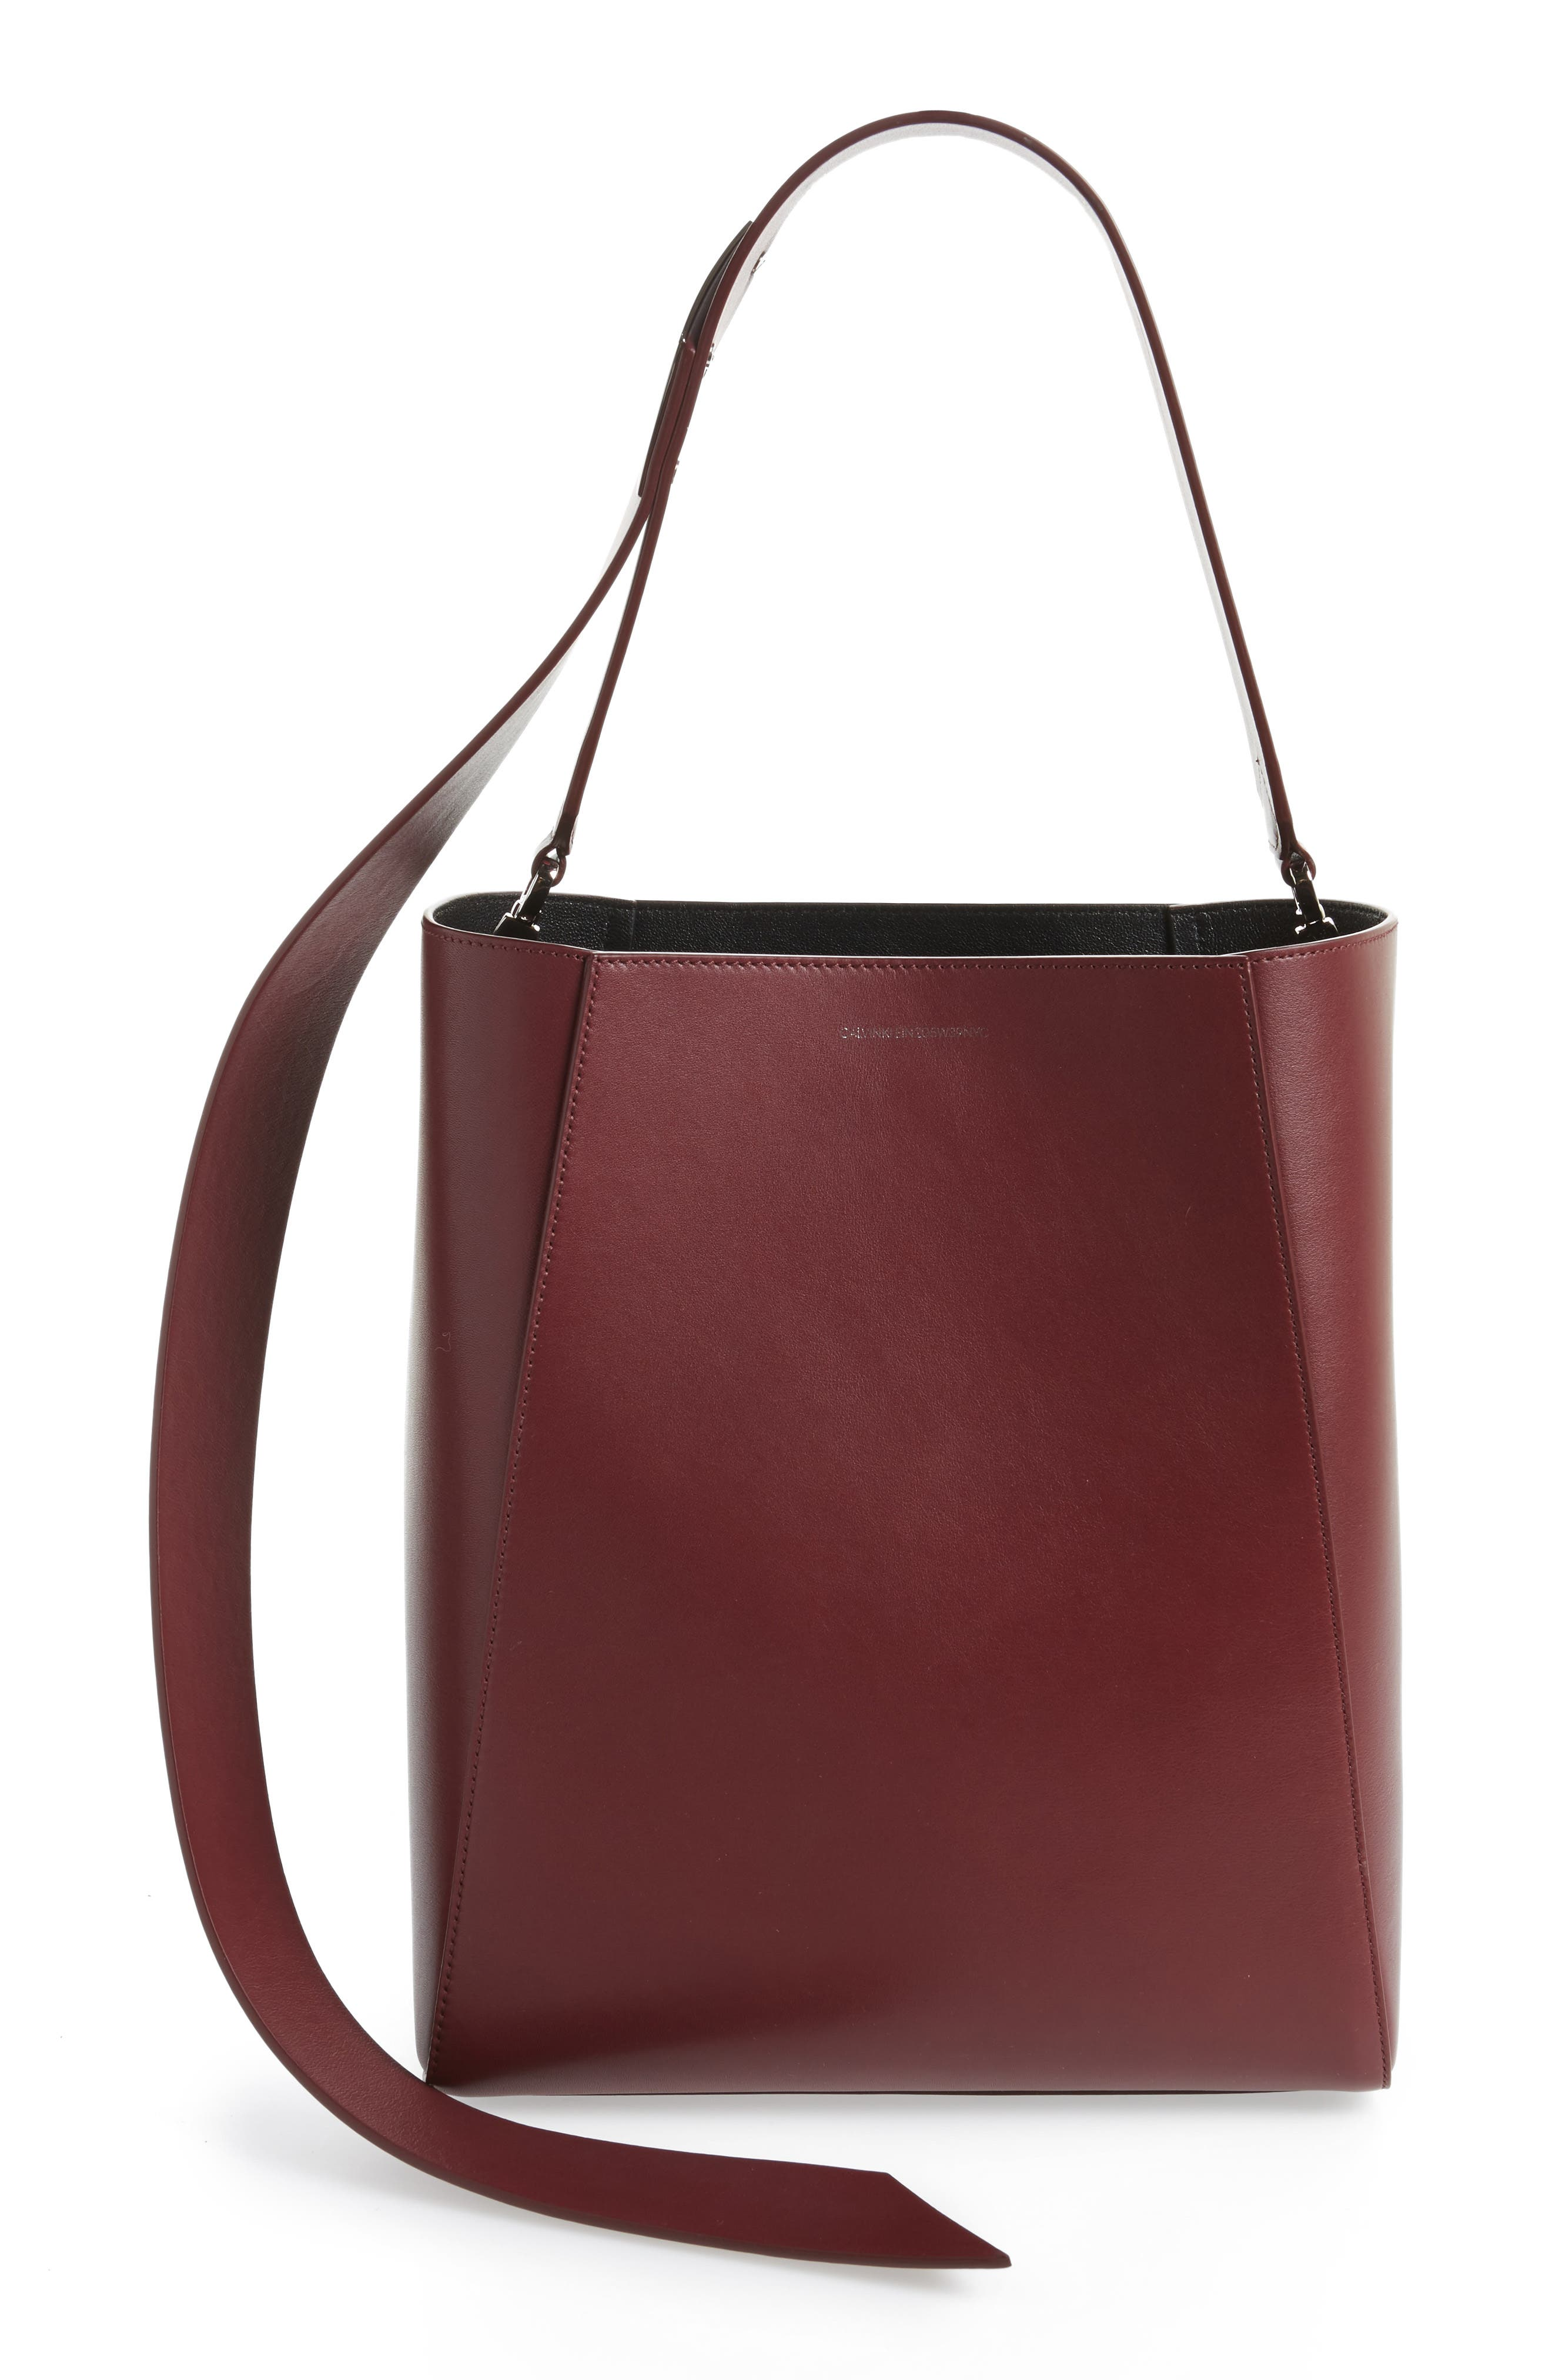 Calvin Klein 205W39NYC Medium Calfskin Leather Bucket Bag with Removable Pouch